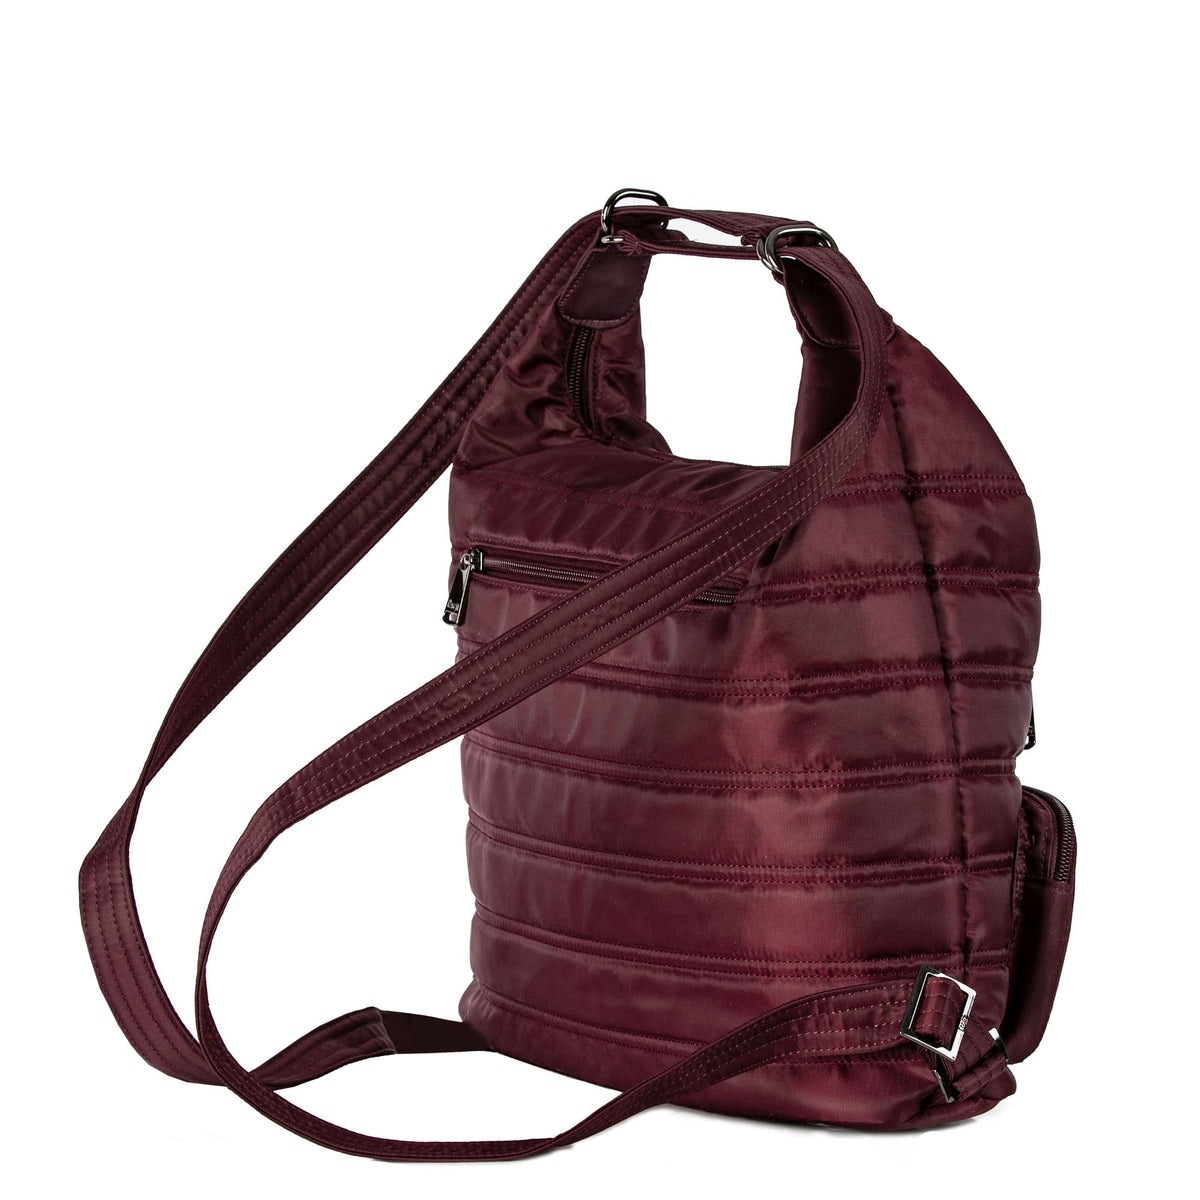 Zipliner Convertible Hobo Bag